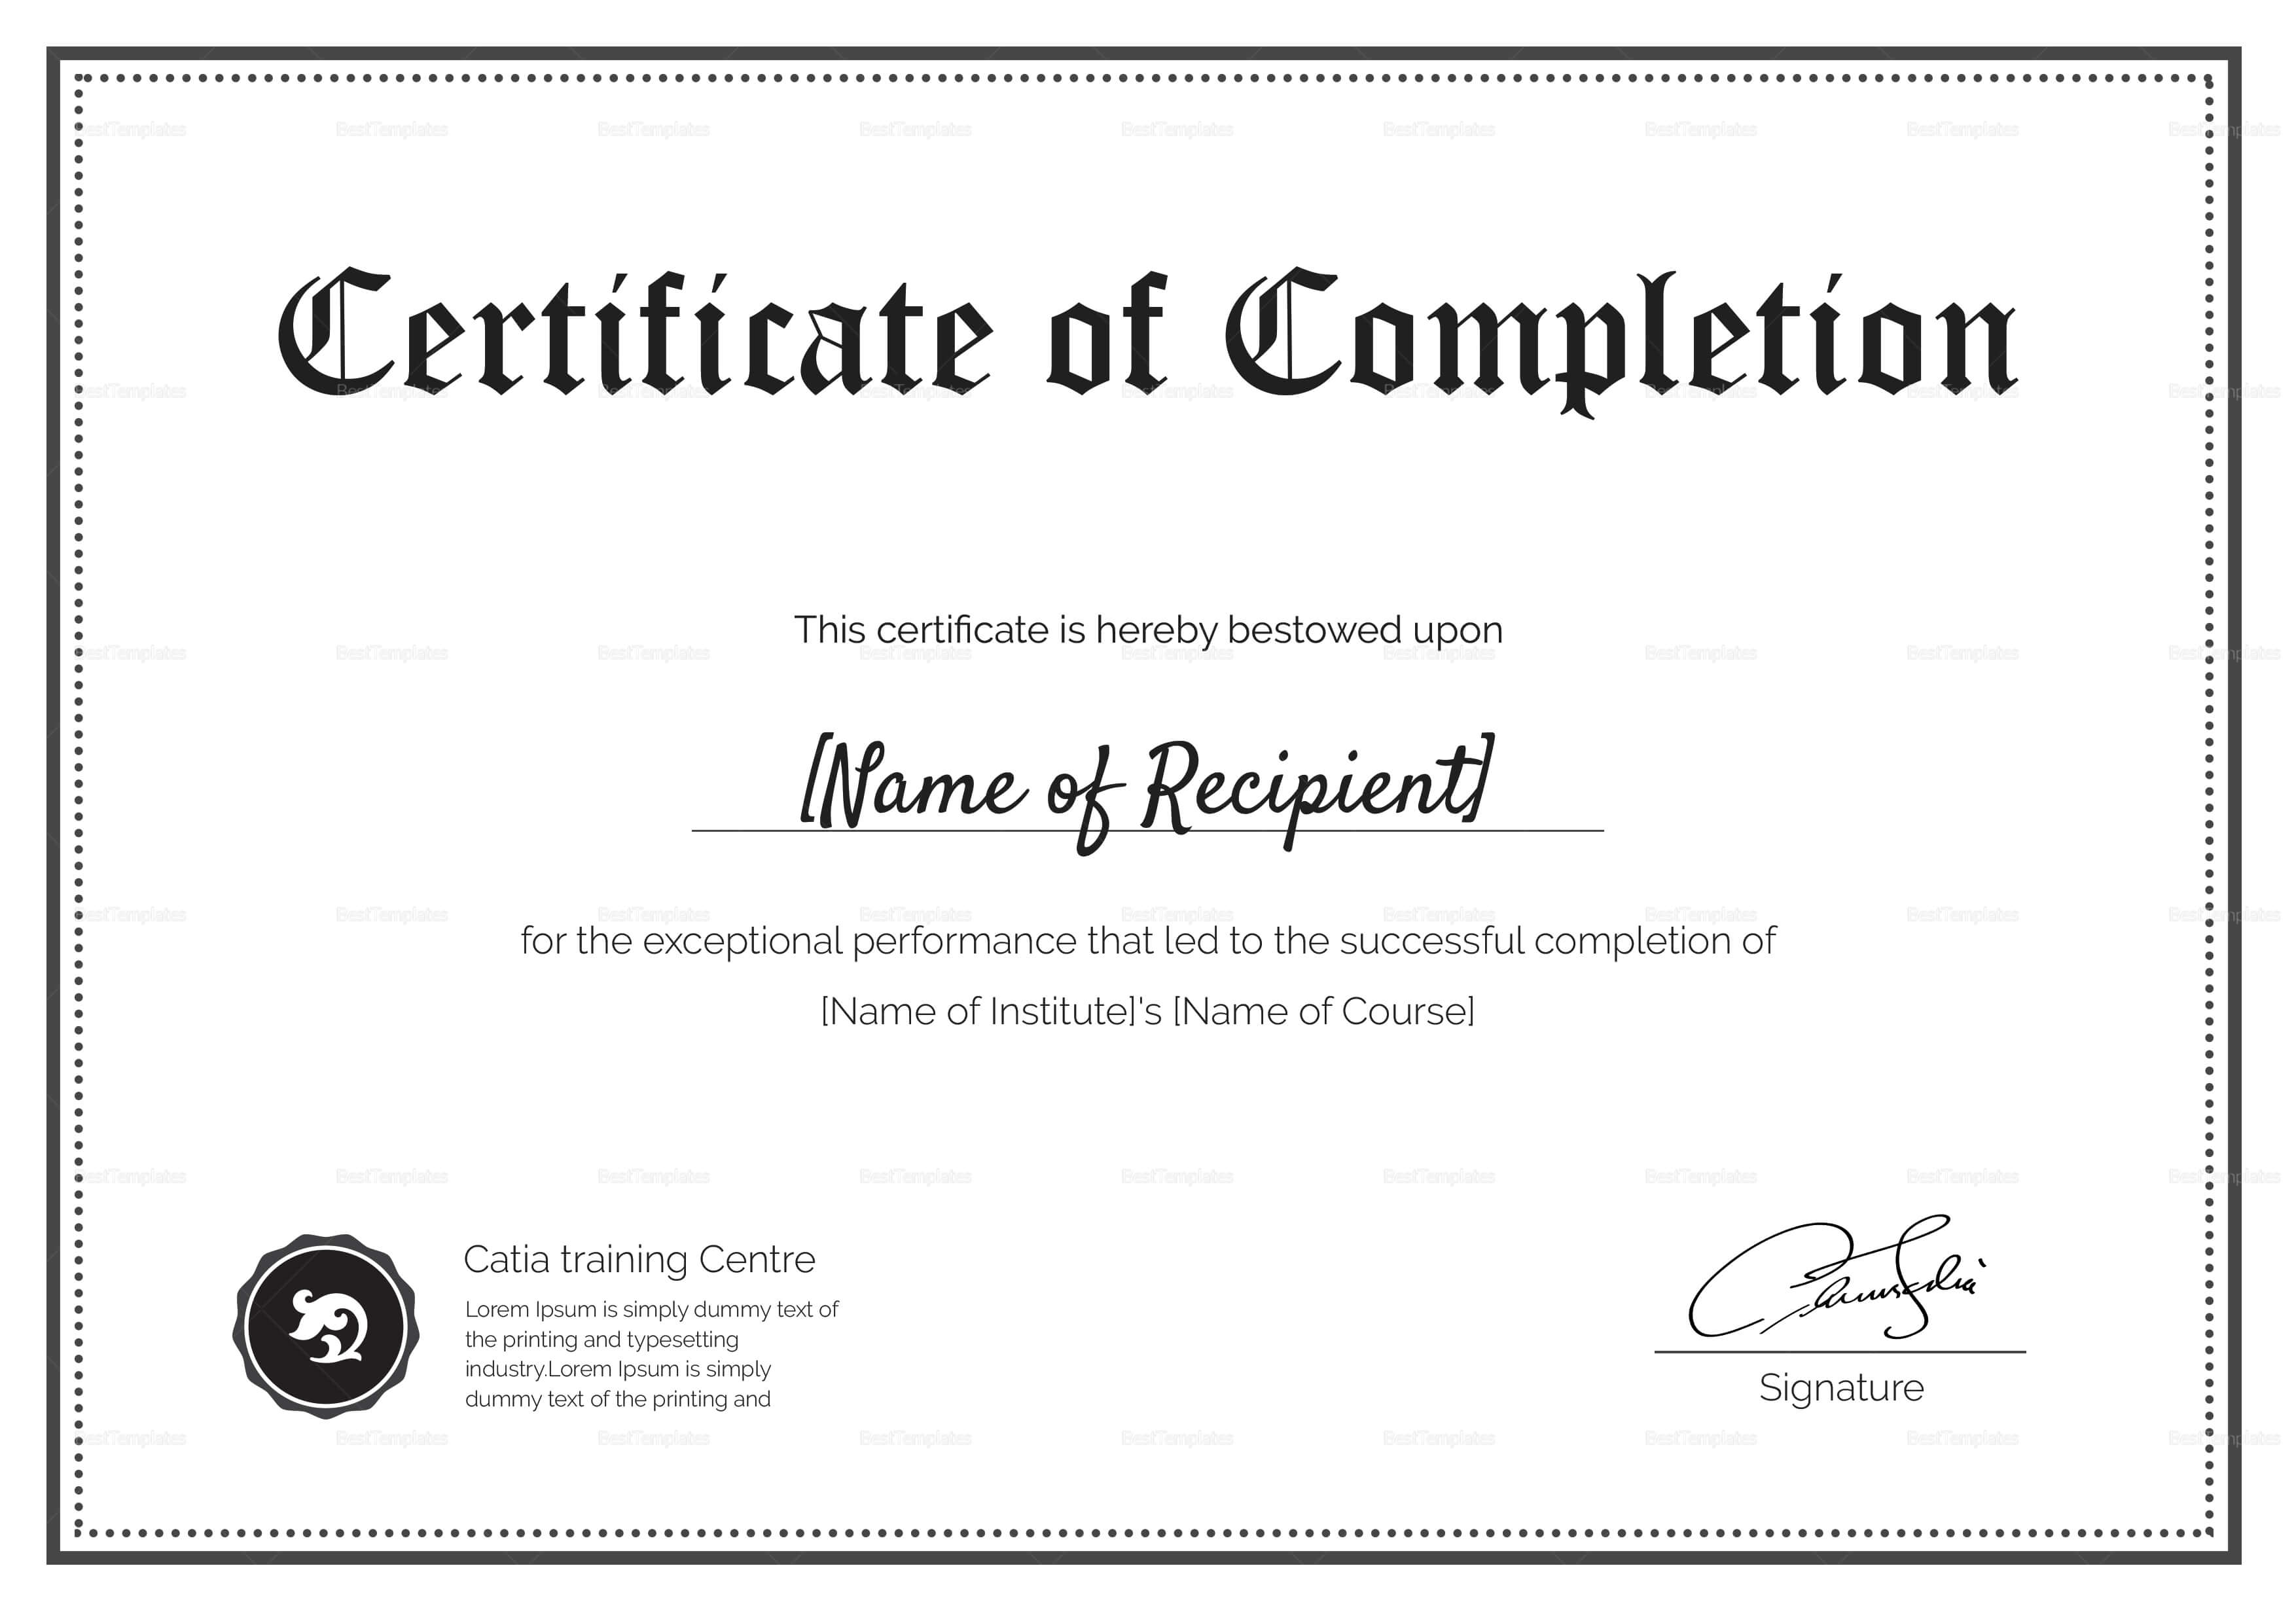 Blank Completion Certificate Template Throughout Certification Of Completion Template